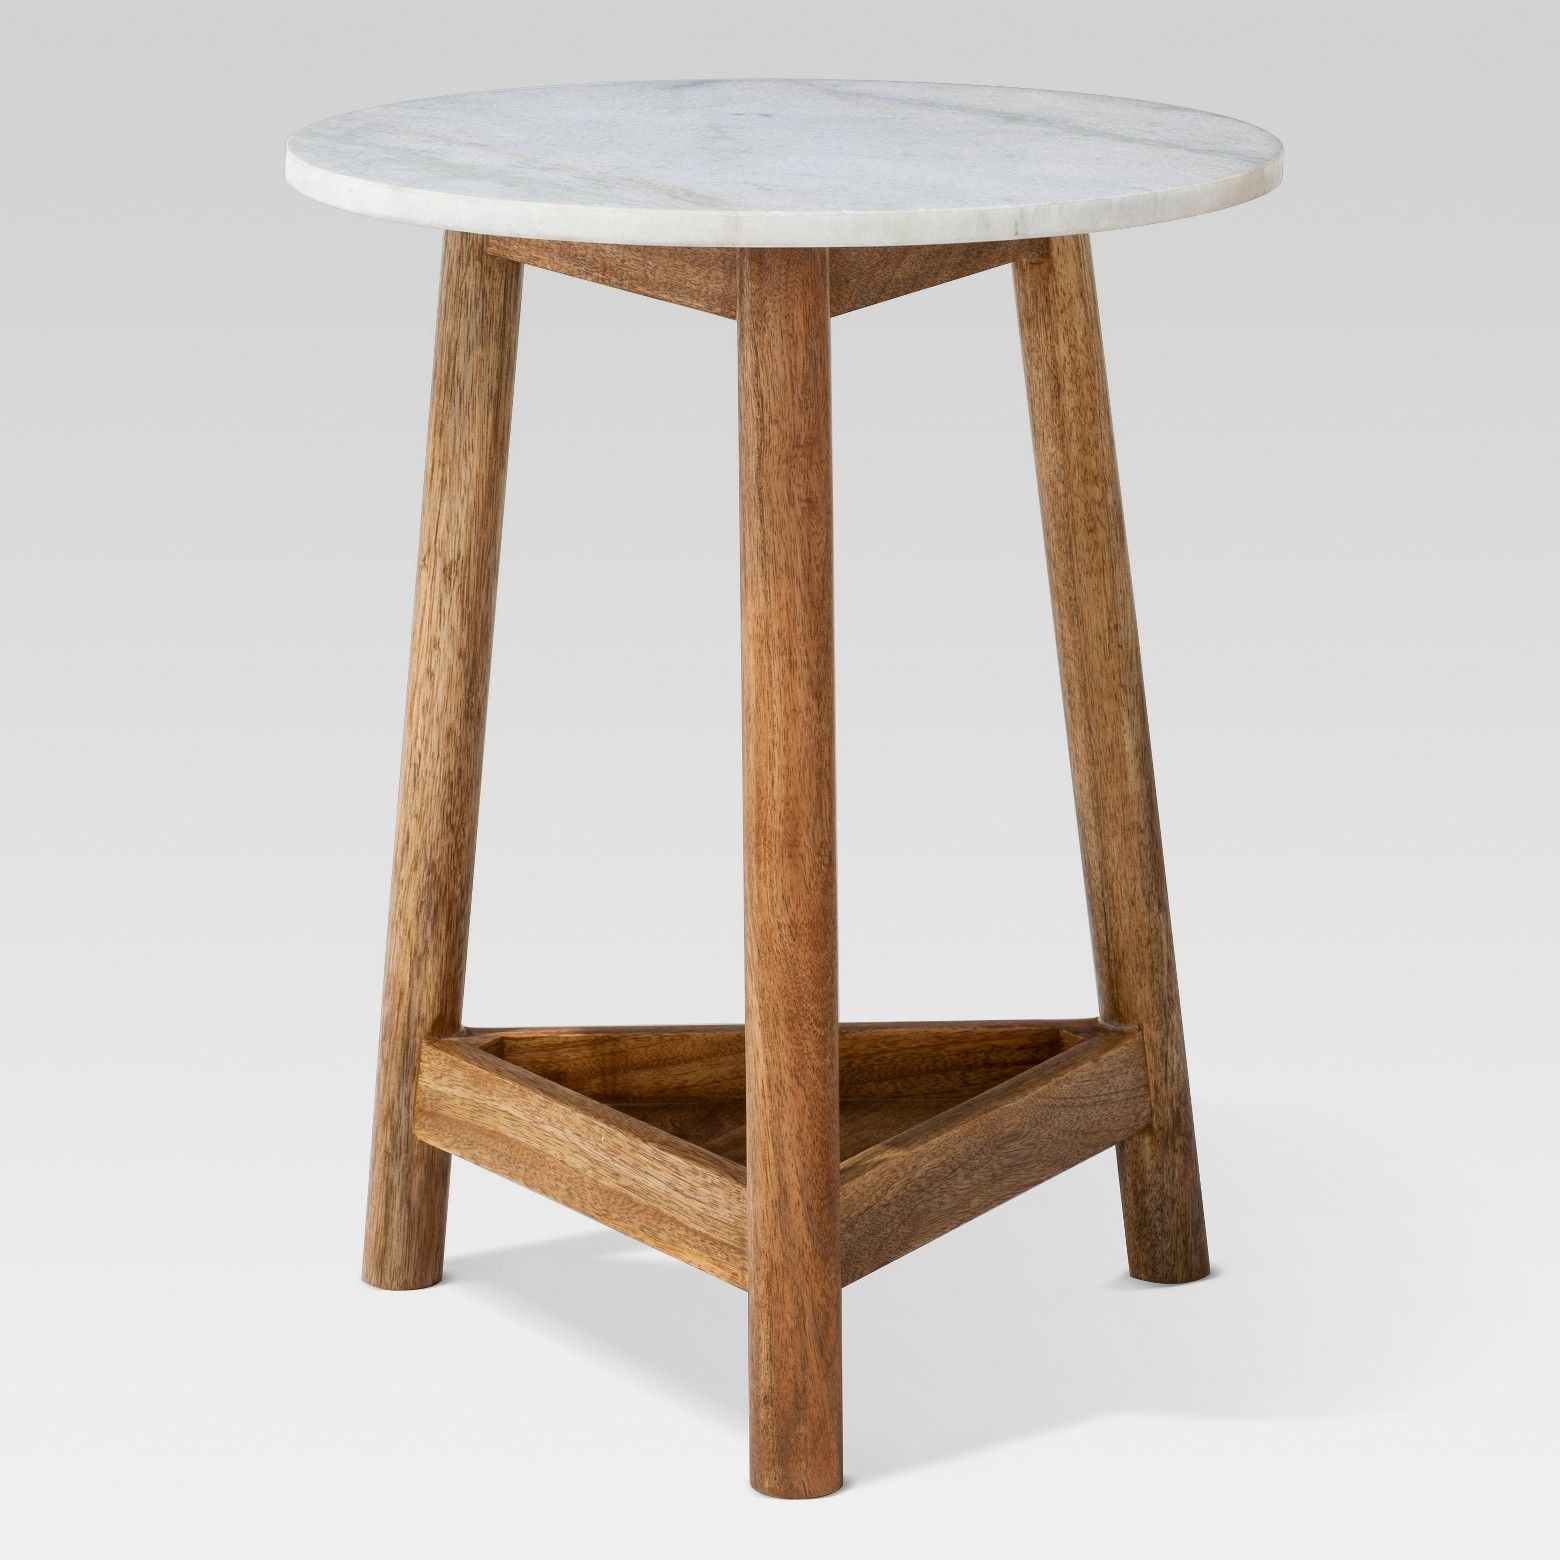 the lanham marble top side table from threshold has beautiful round accent blend mango wood and reg patchwork rug nautical flush mount light small glass blue ginger jar lamps